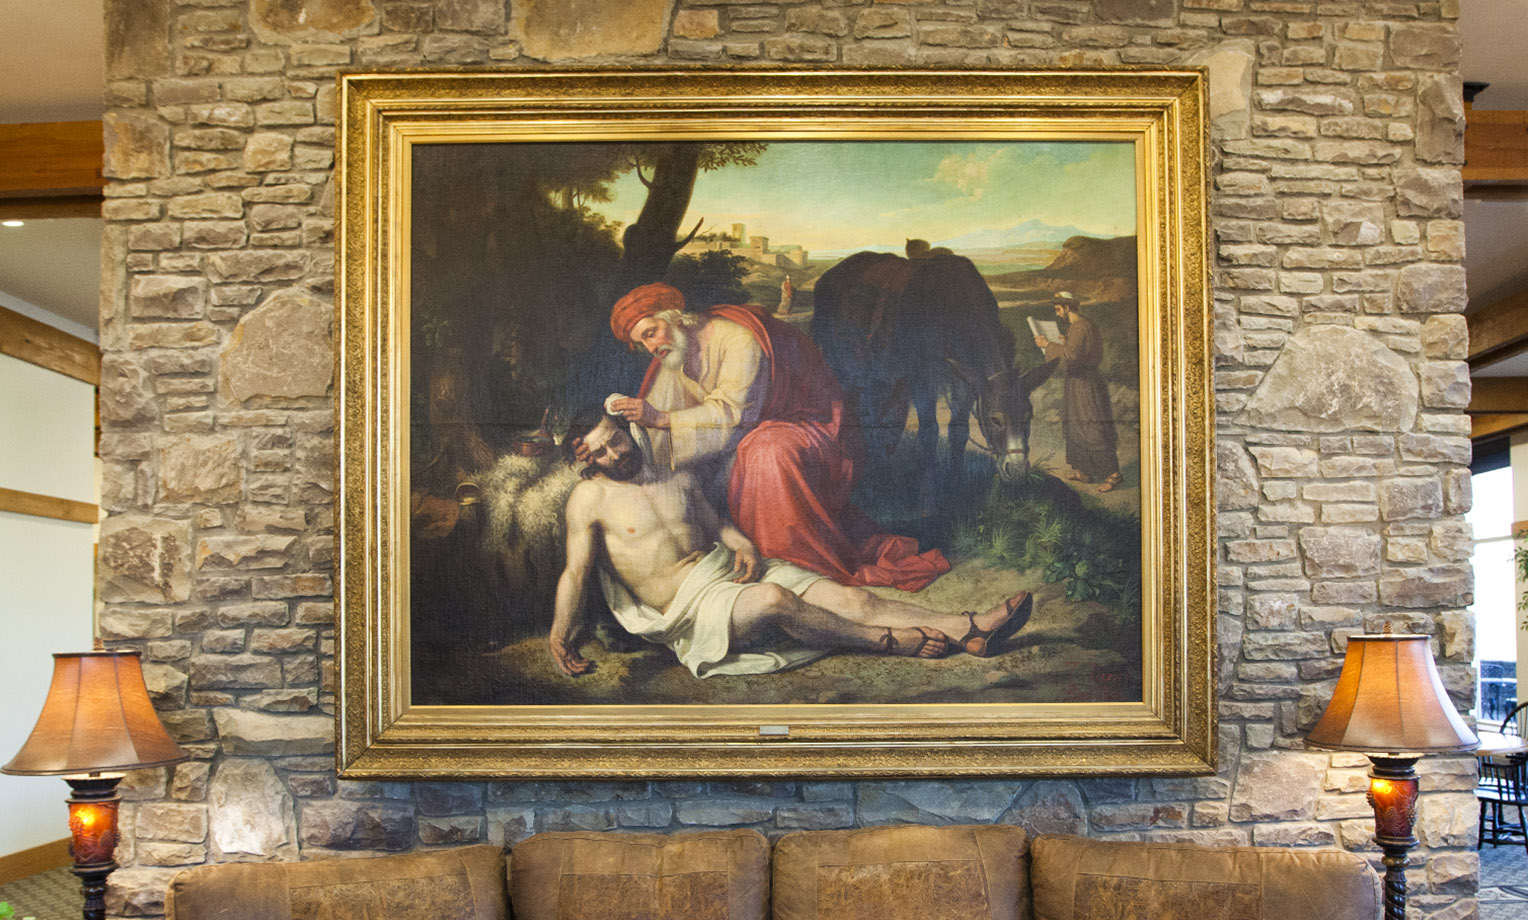 """""""La Caridad del Samaritano"""" literally translated, """"The Charity of the Samaritan"""" is an oil painting by Spaniard Jose Tapiro y Baro (1863-1913) depicting the story of the Good Samaritan from Luke 10:30-37. A gift to Samaritan's Purse in 2011 from the Gamboa Family Trust, the work of art is a reminder to all of Christ's followers to """"Go and do likewise."""" This painting hangs at the entrance to the Furman Building at the ministry's international headquarters in Boone."""